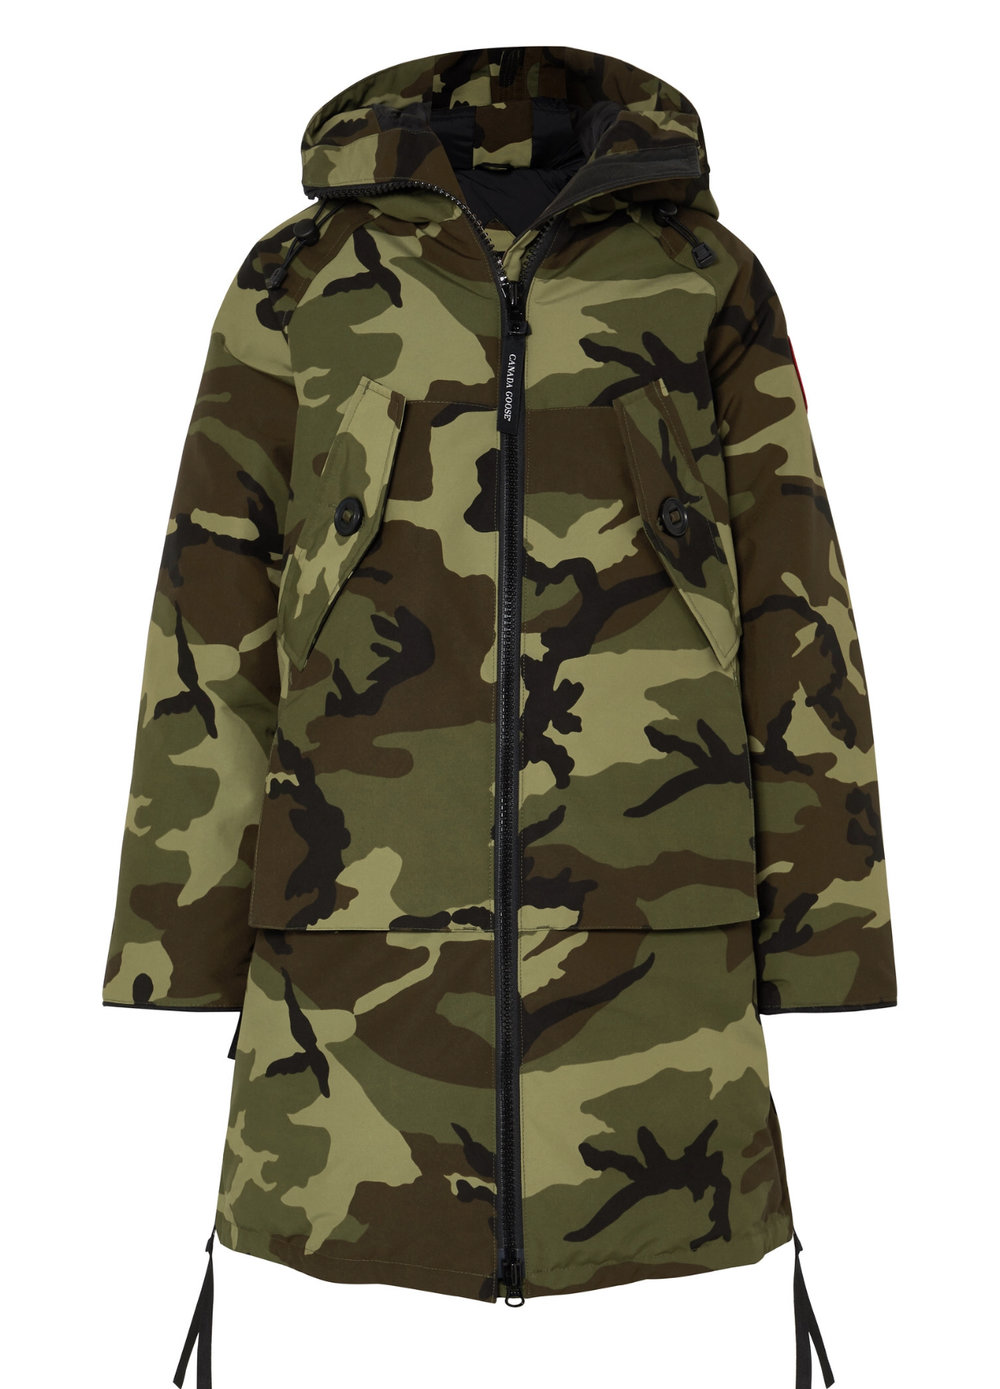 Canada Goose Olympia Down Parka - 1173€